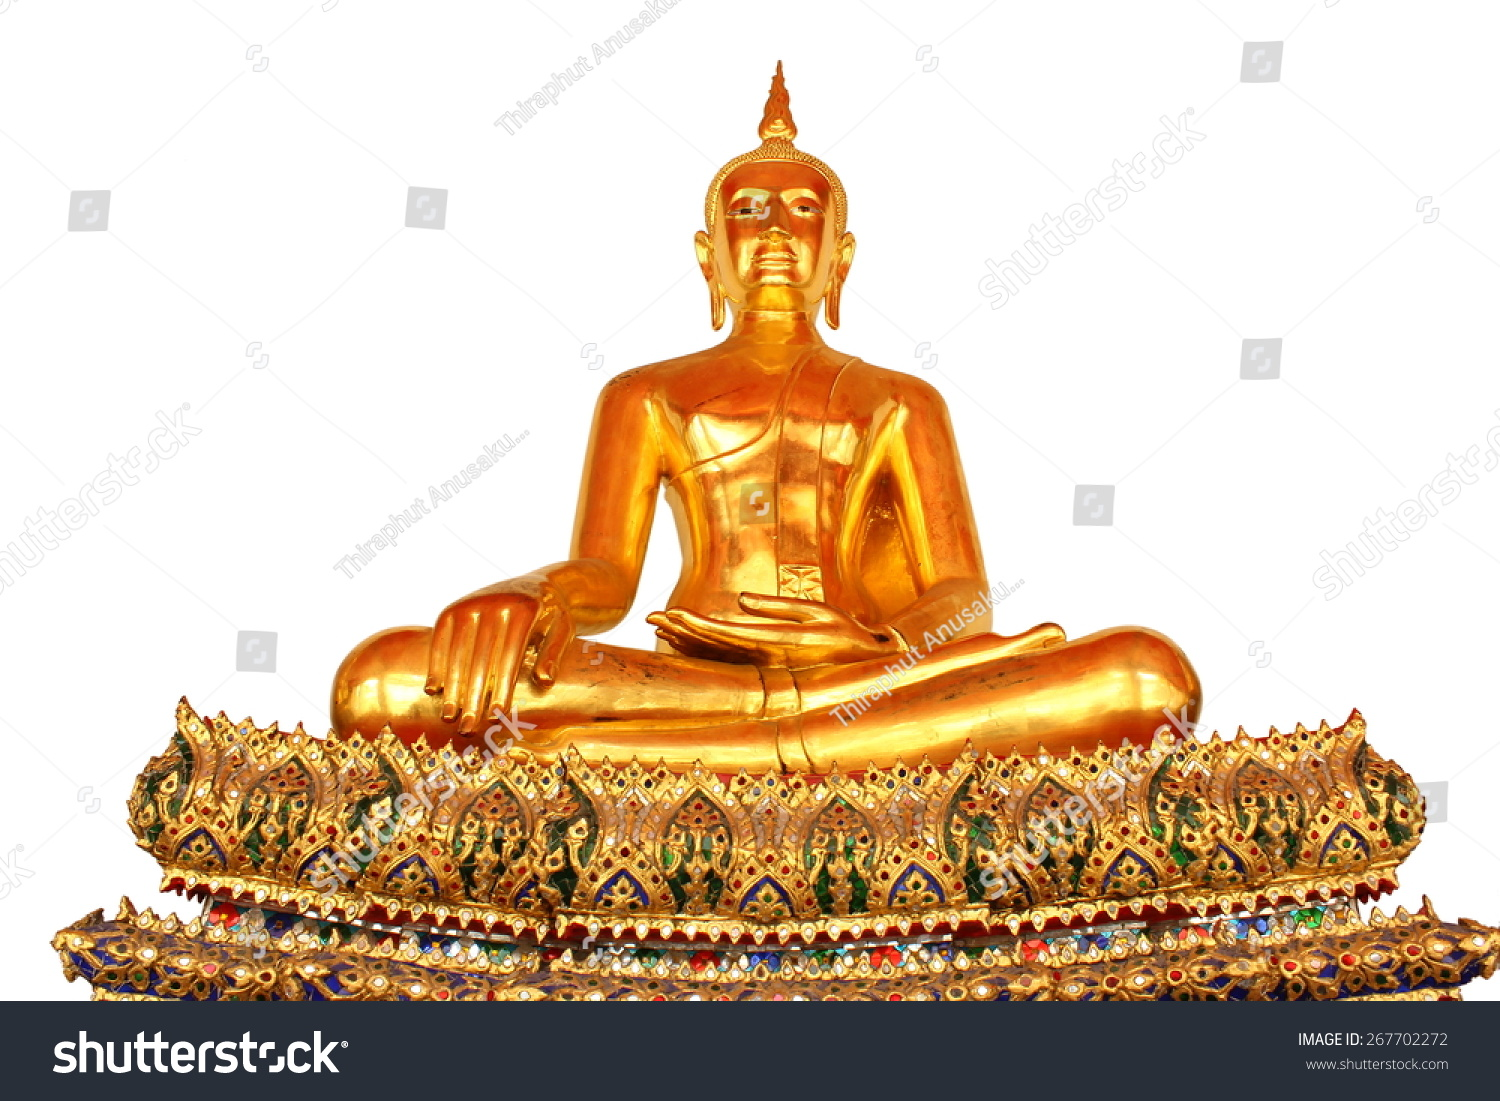 buddhist singles in buckholts We've added multiple favorites to varsity stats  he had embraced buddhism in the last year of his life,  bryson 16 brookesmith 54, trent 8 buckholts 85,.